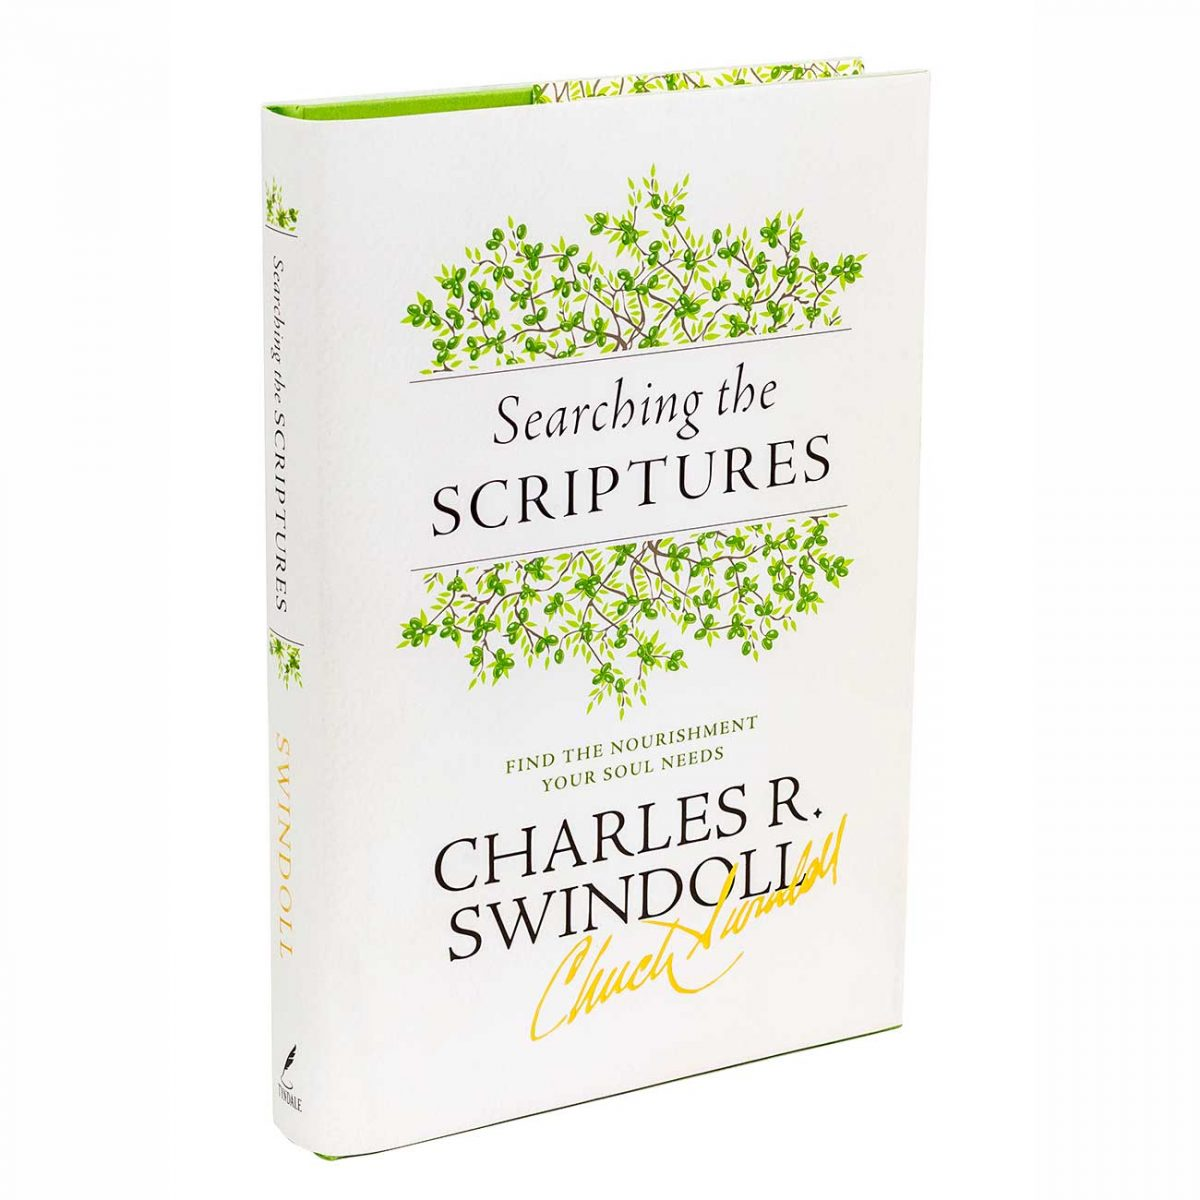 SEARCHING THE SCRIPTURES: Find the Nourishment Your Soul Needs, hardback book